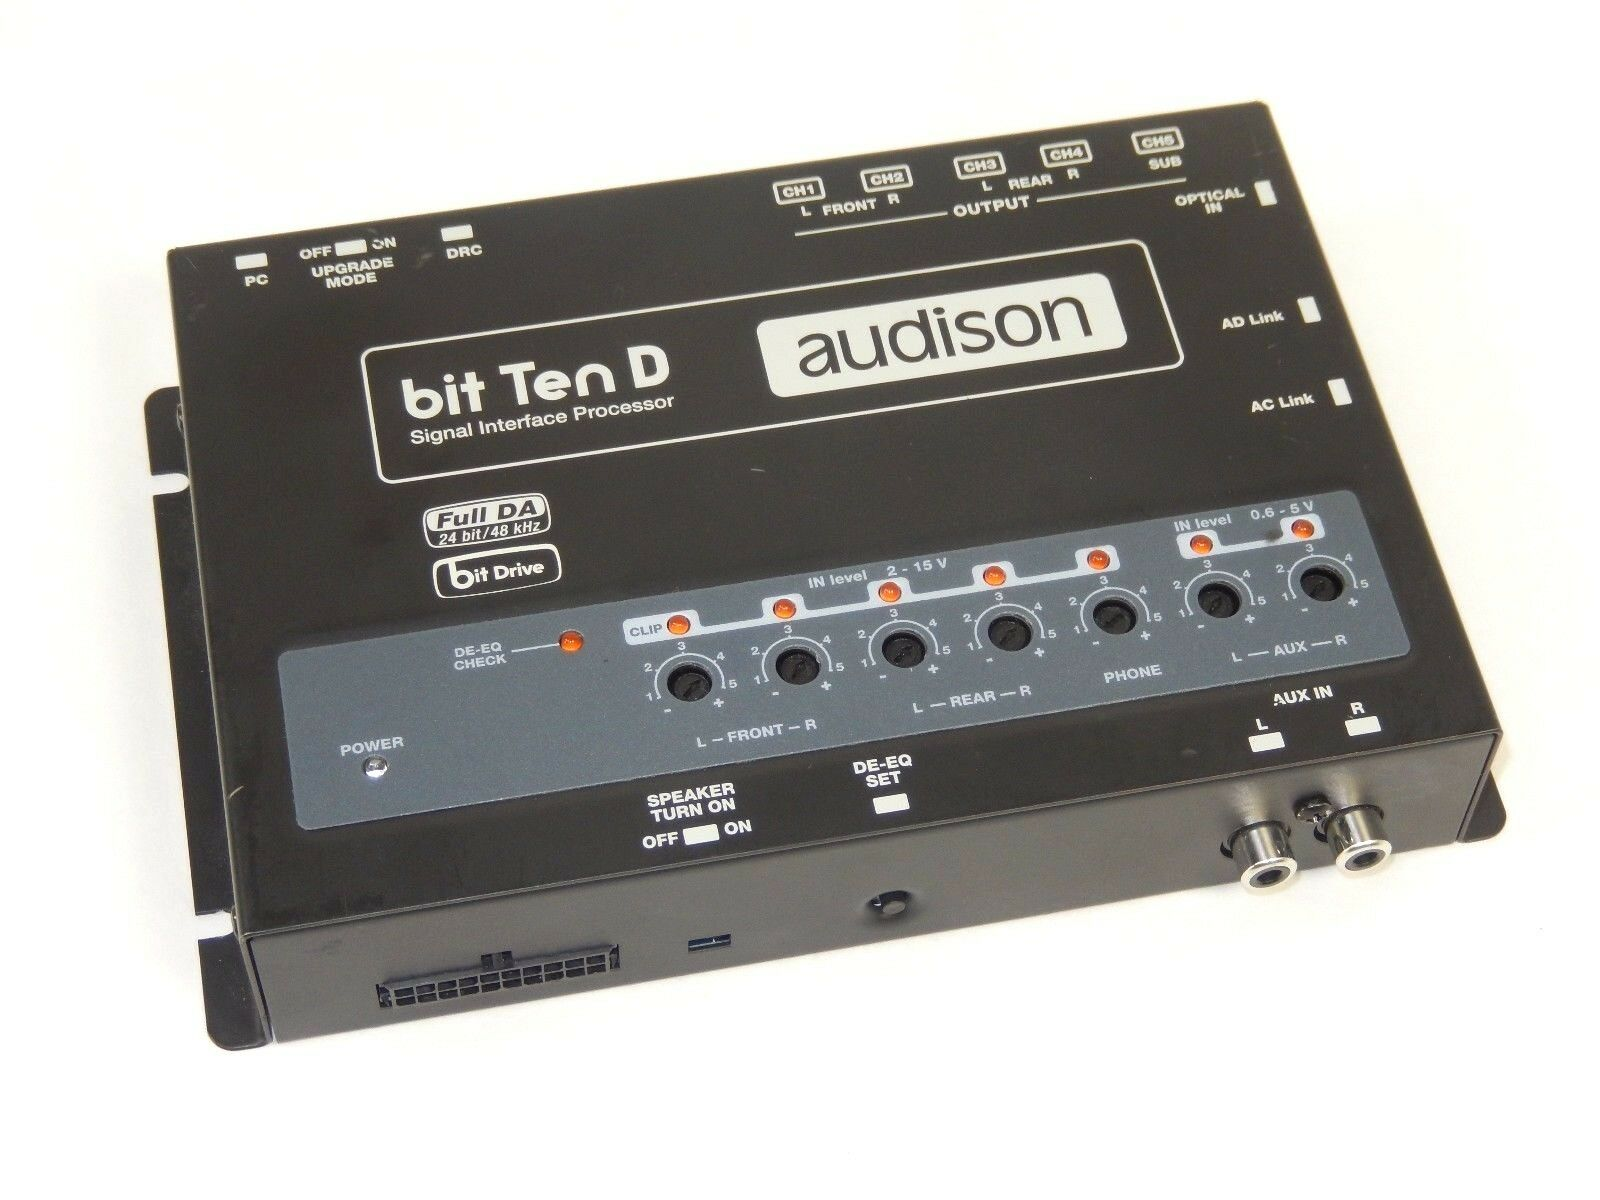 minty audison bit ten d signal interface processor dsp. Black Bedroom Furniture Sets. Home Design Ideas